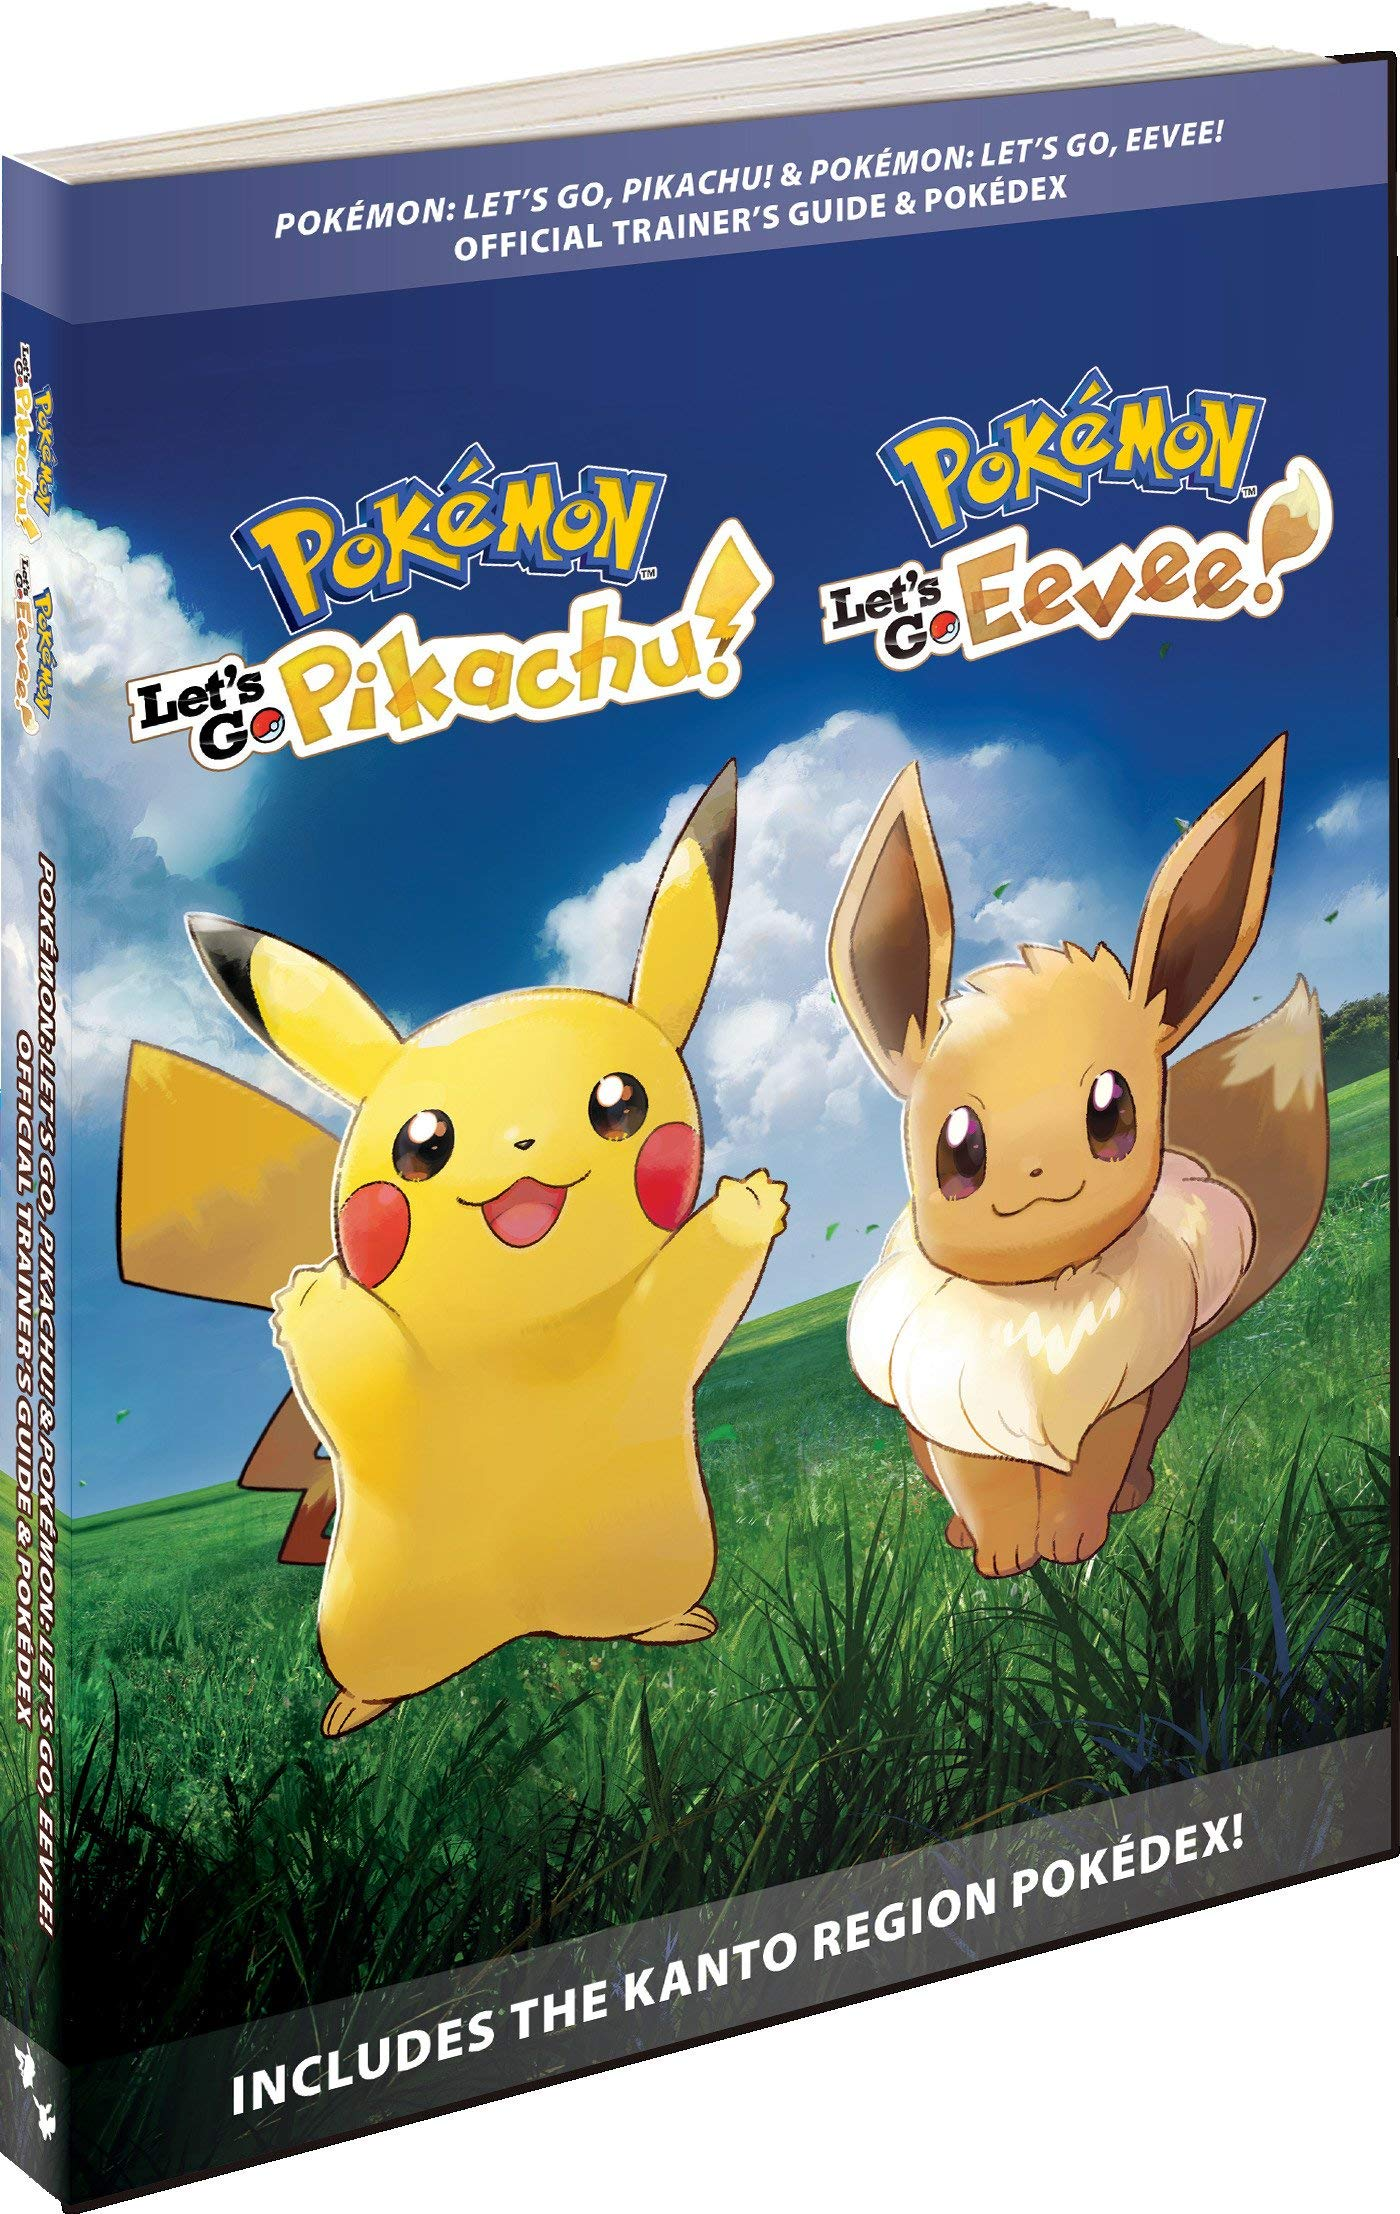 Pokémon Lets Go, Pikachu! & Pokémon Lets Go, Eevee!: Official ...